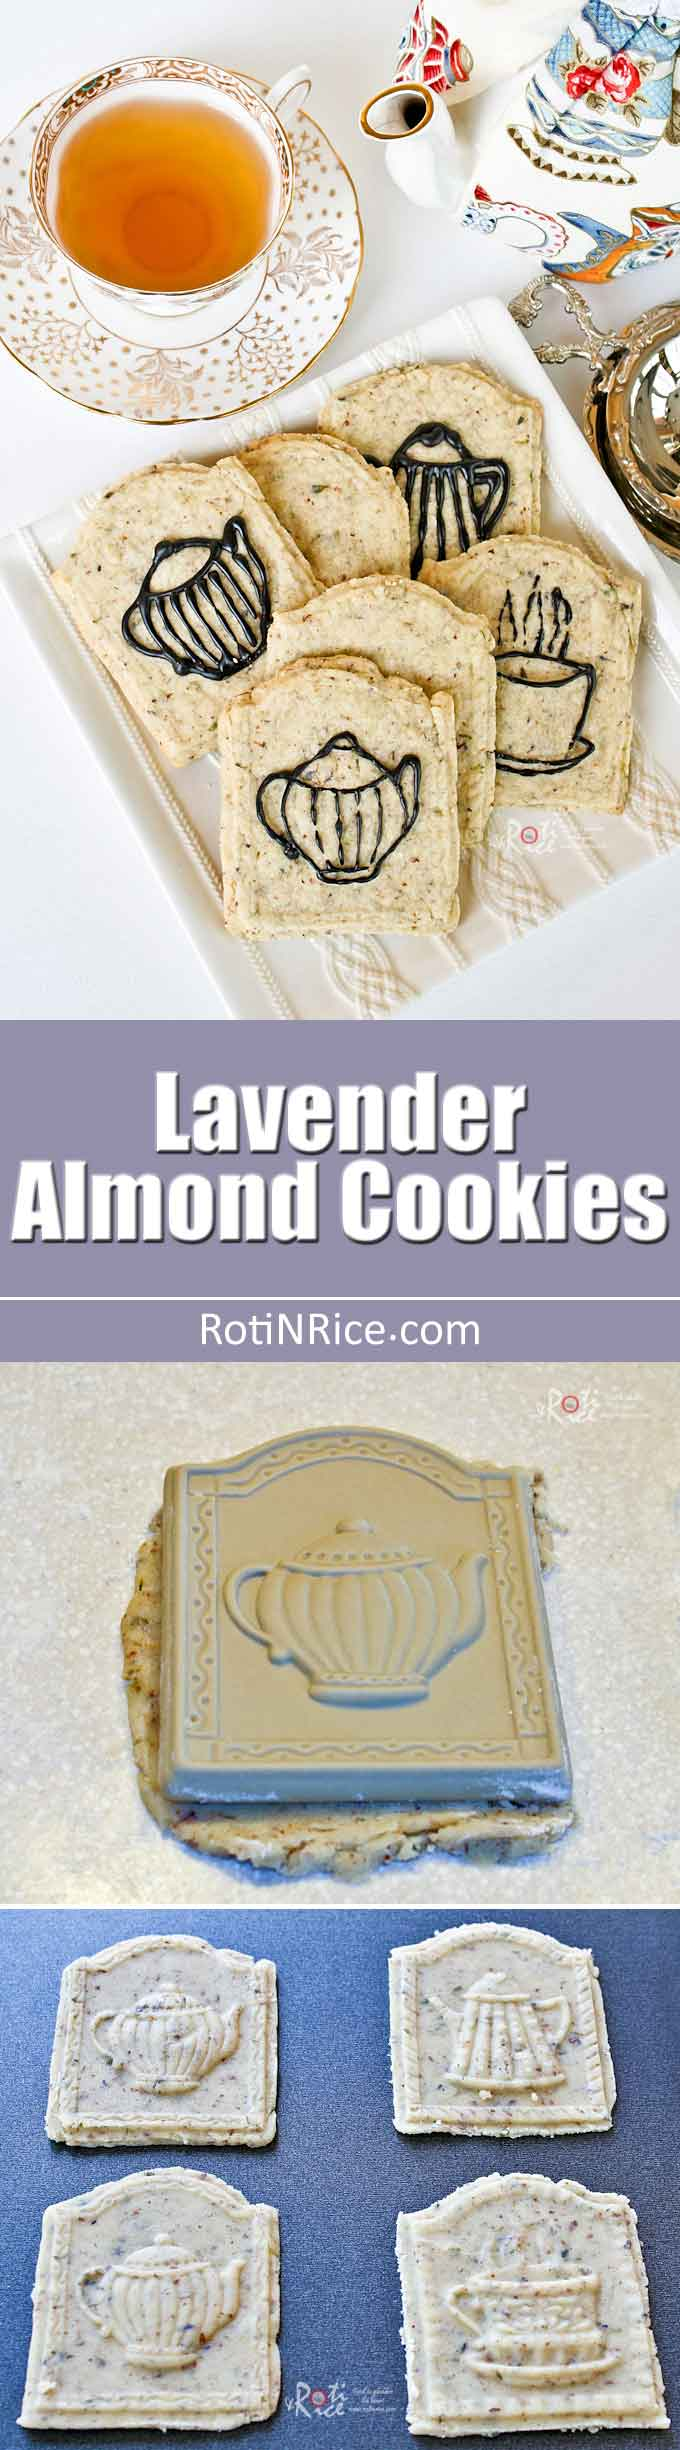 These beautiful Lavender Almond Cookies are a little soft and not overly floral. The almond meal gives it a slightly nutty flavor. | RotiNRice.com